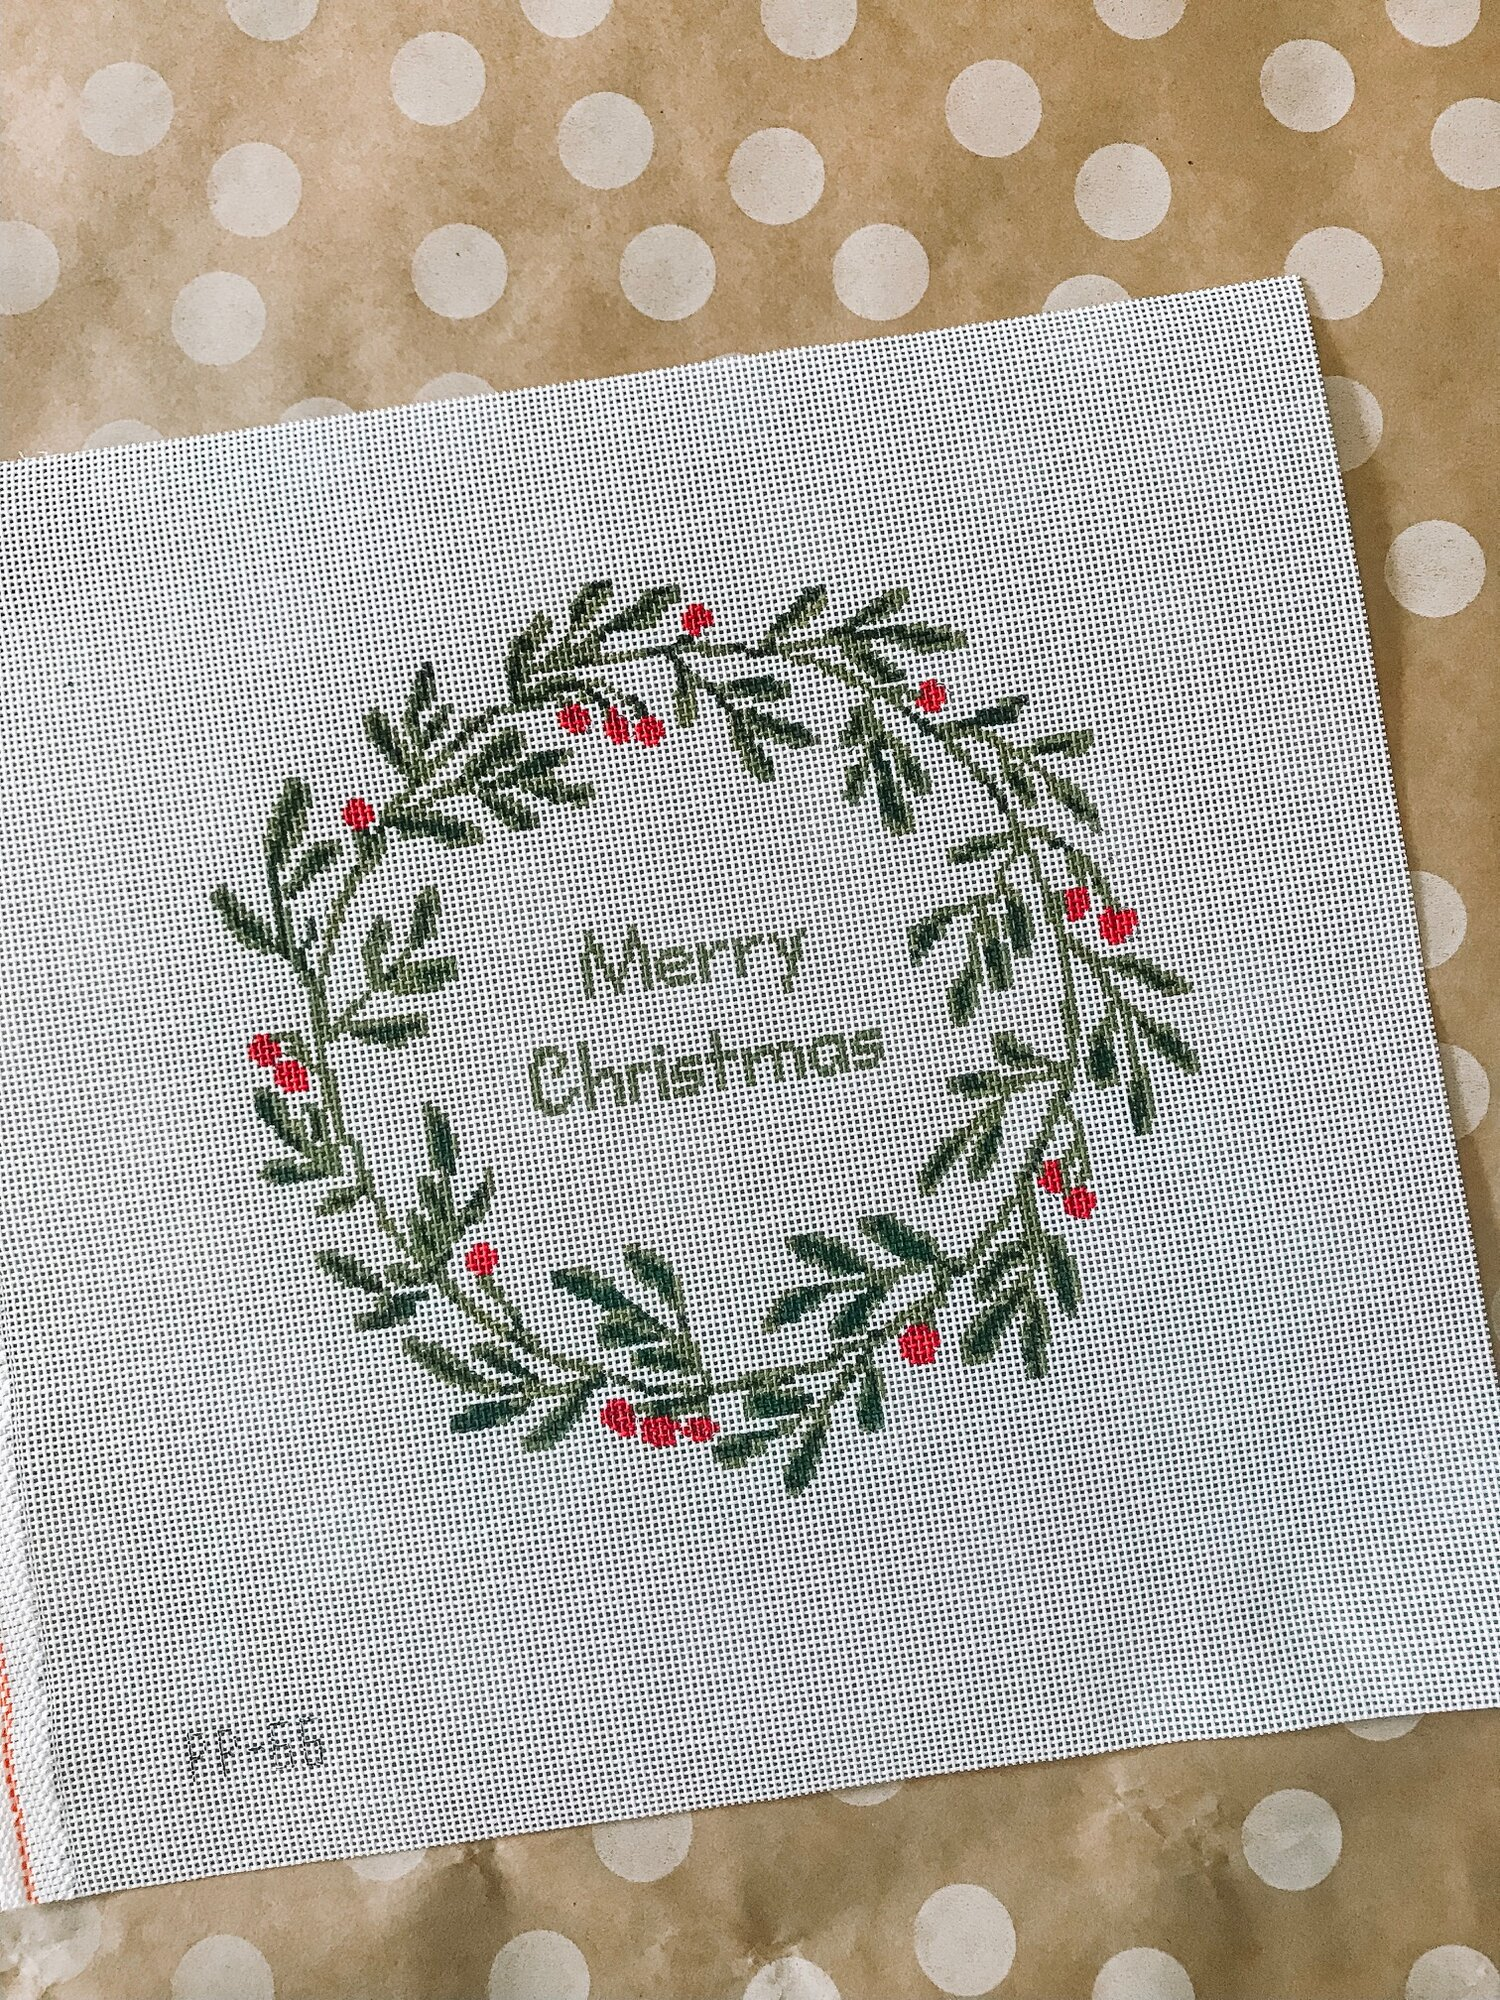 "Christmas Wreath - (PP66) 7"" round on 18 mesh"